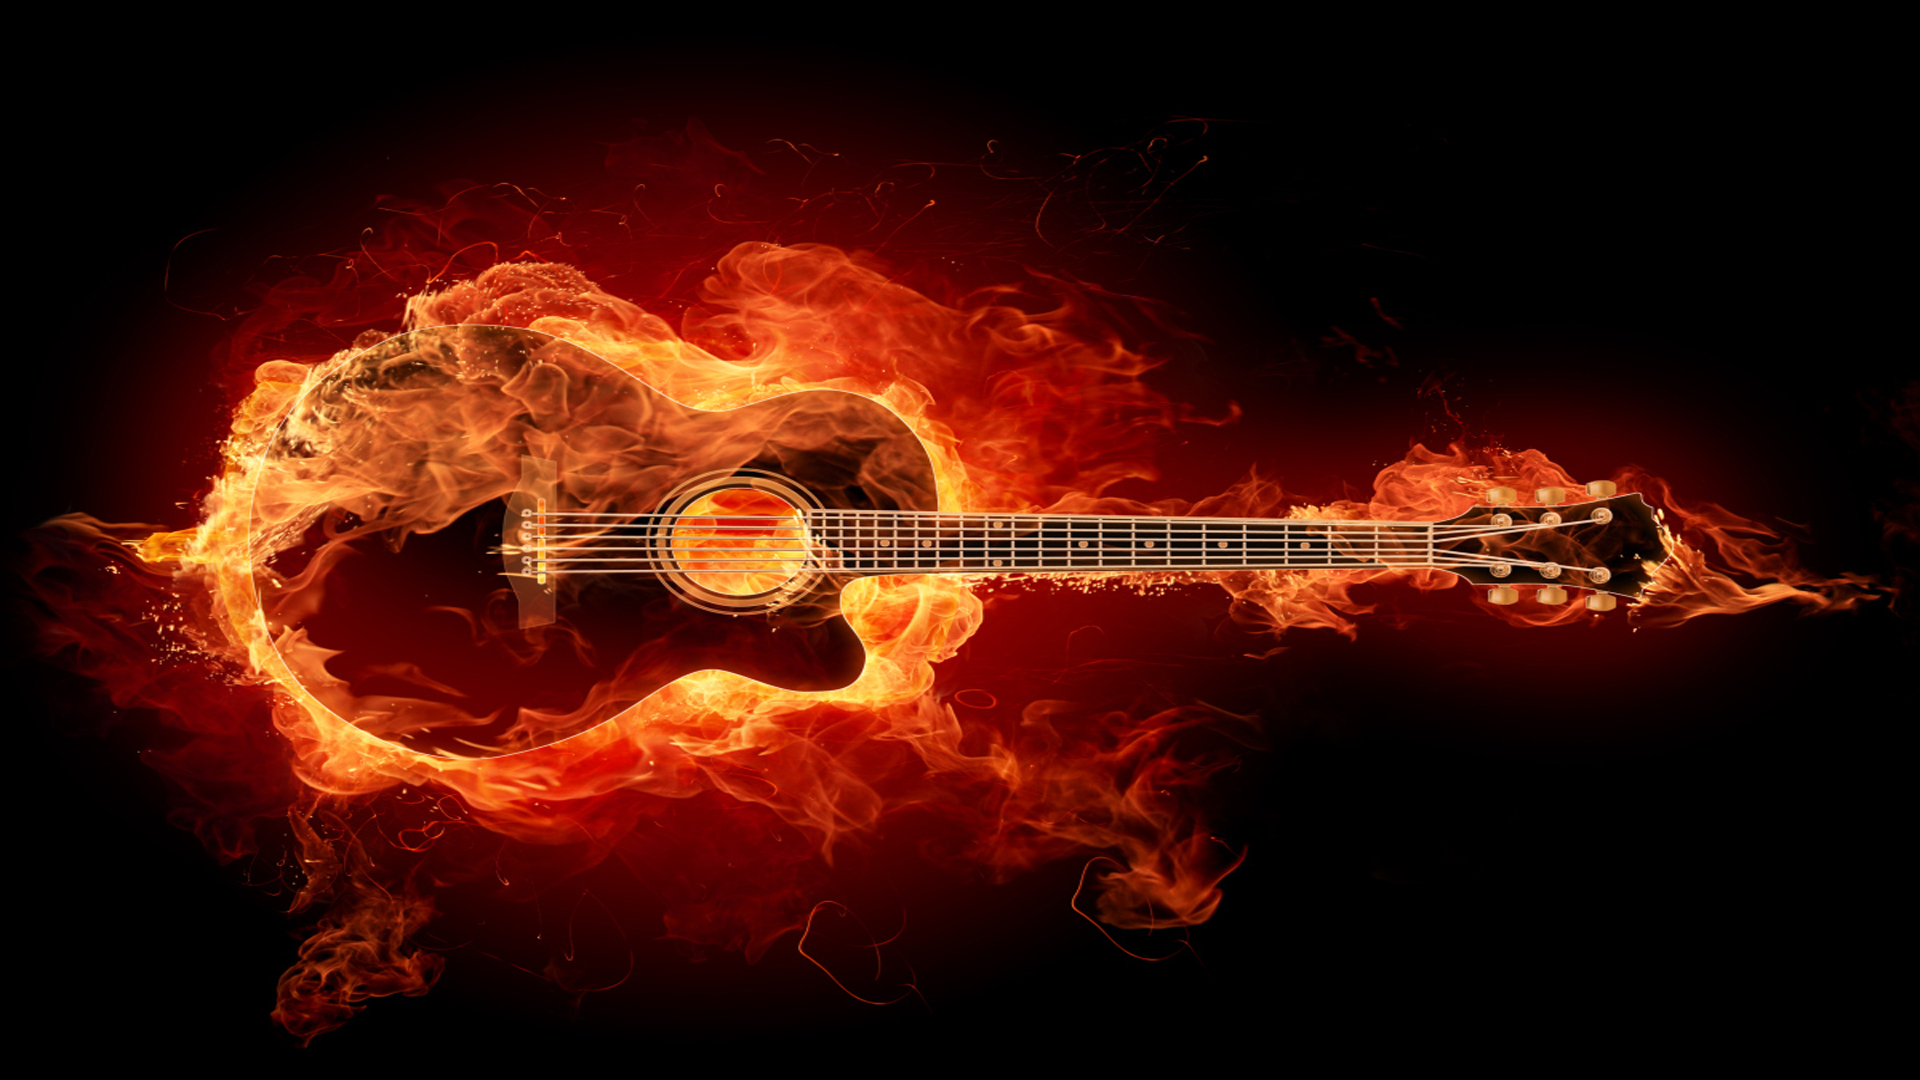 CGI - Guitar  Wallpaper